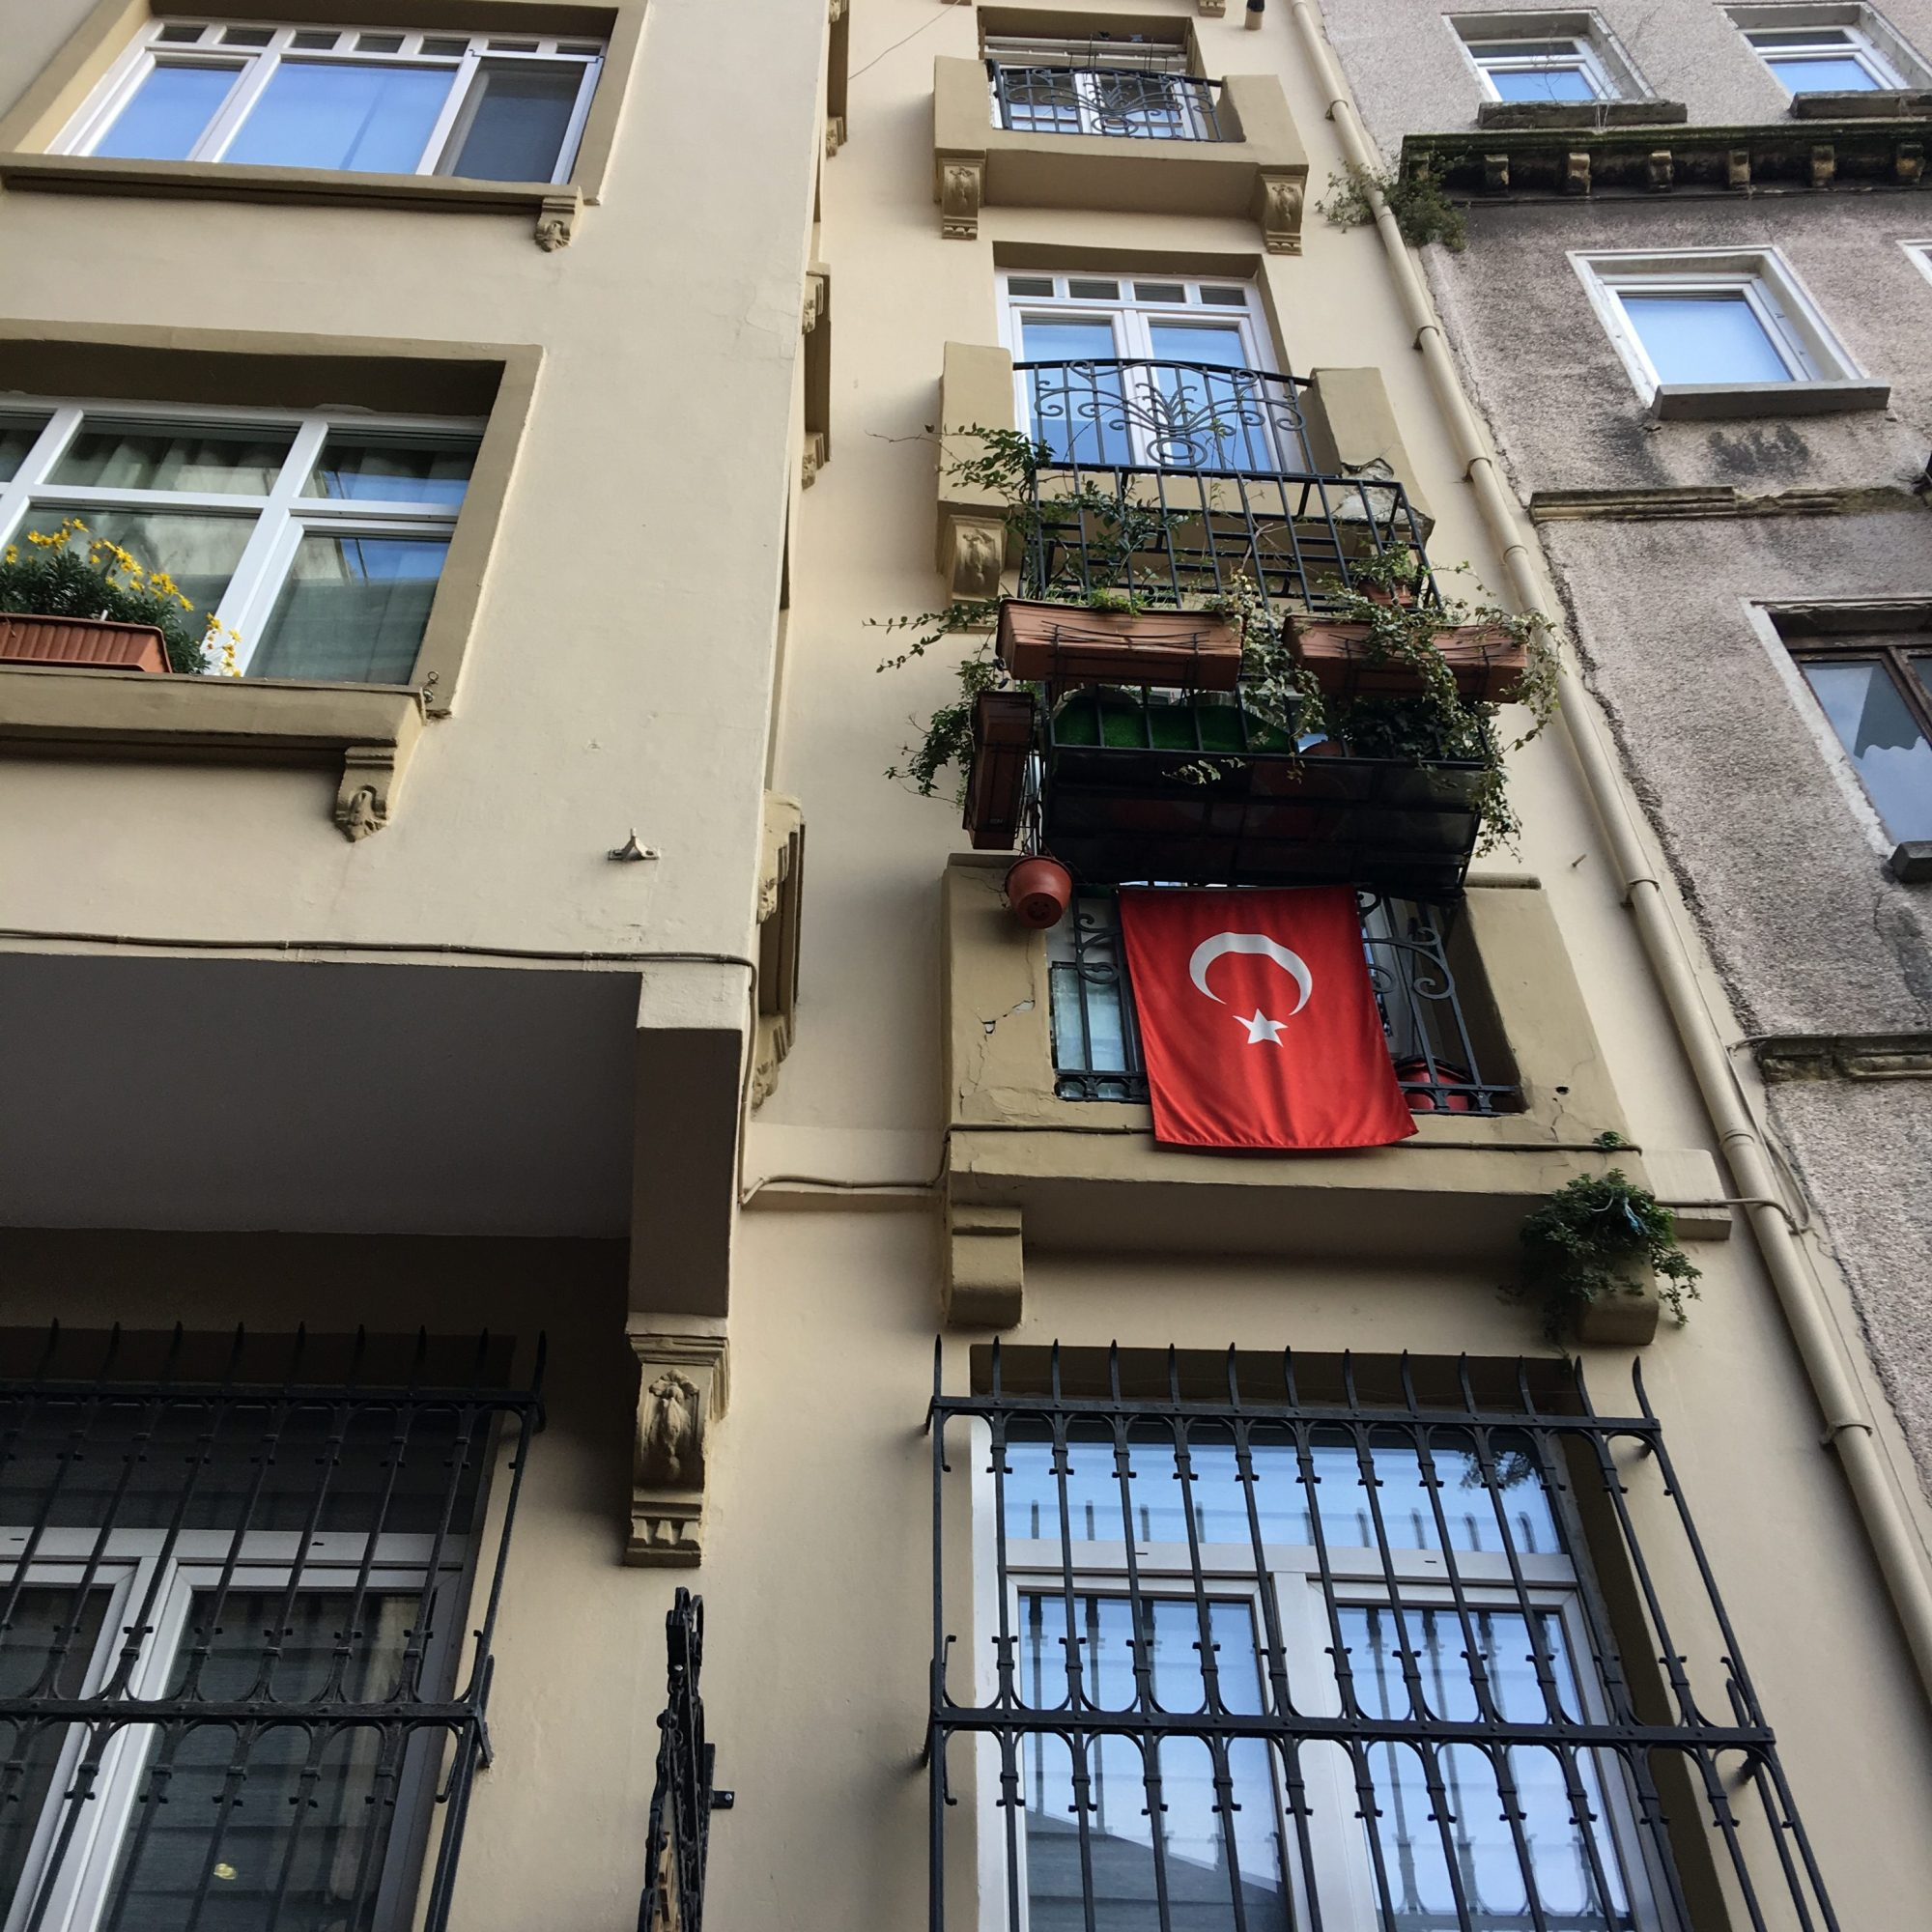 Illustrated by Sade - Turkish flag displayed on the balcony of a residential building in Istanbul